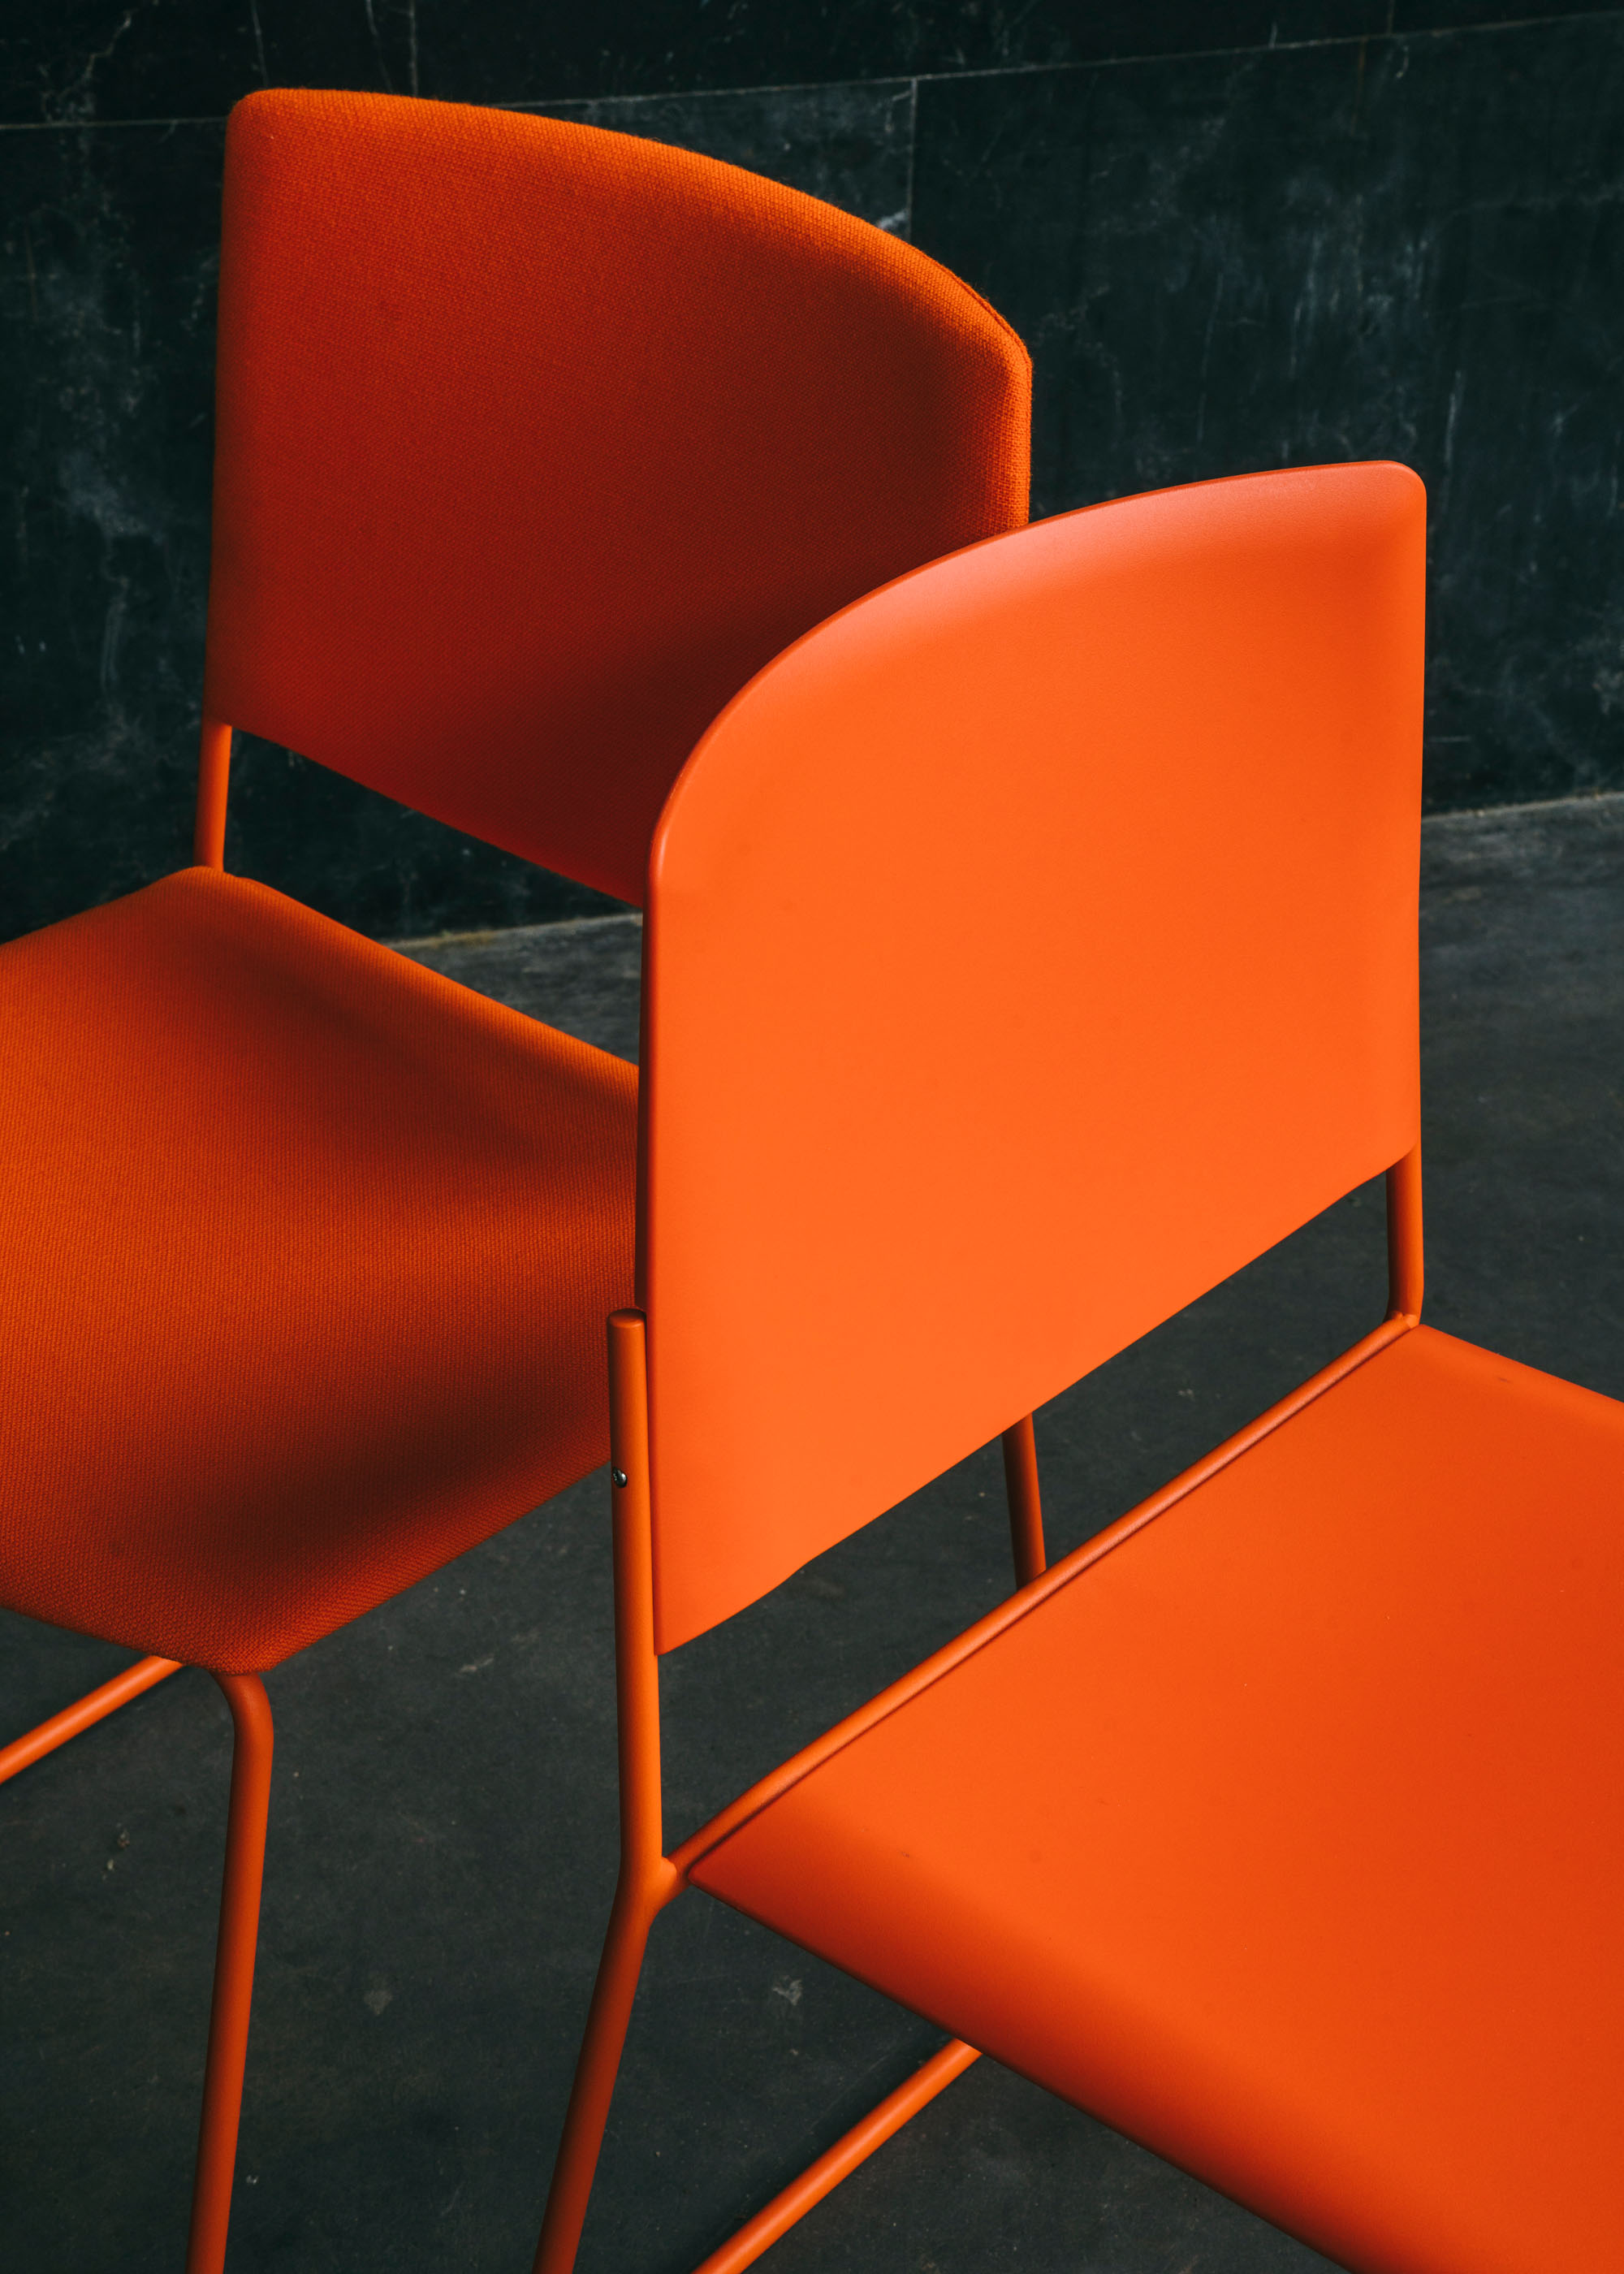 #furniture #enea #design #clase #basque #chairs #stilllife #orange